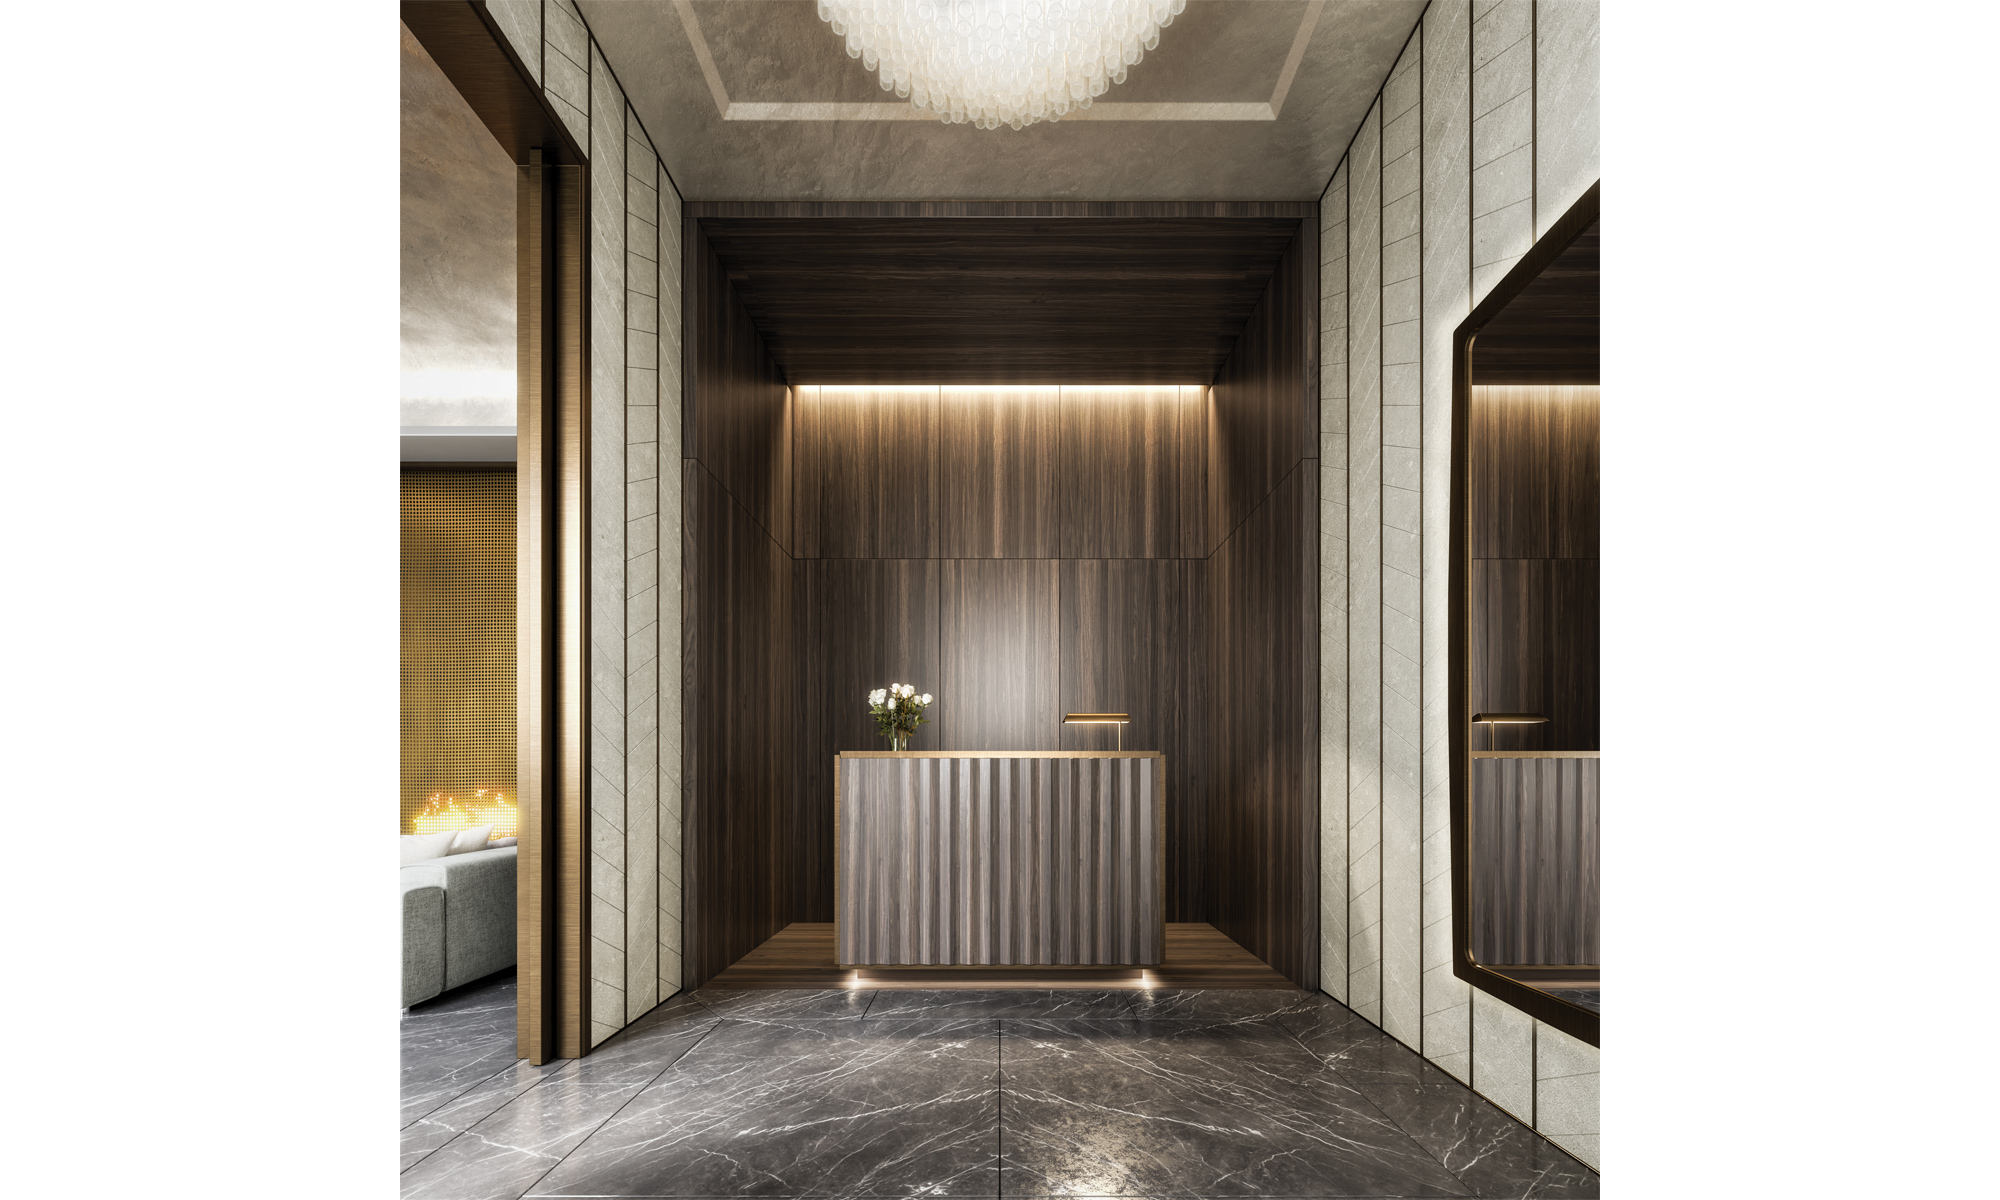 Artist's impression of the entrance lobby and concierge desk at Belgravia Gate.